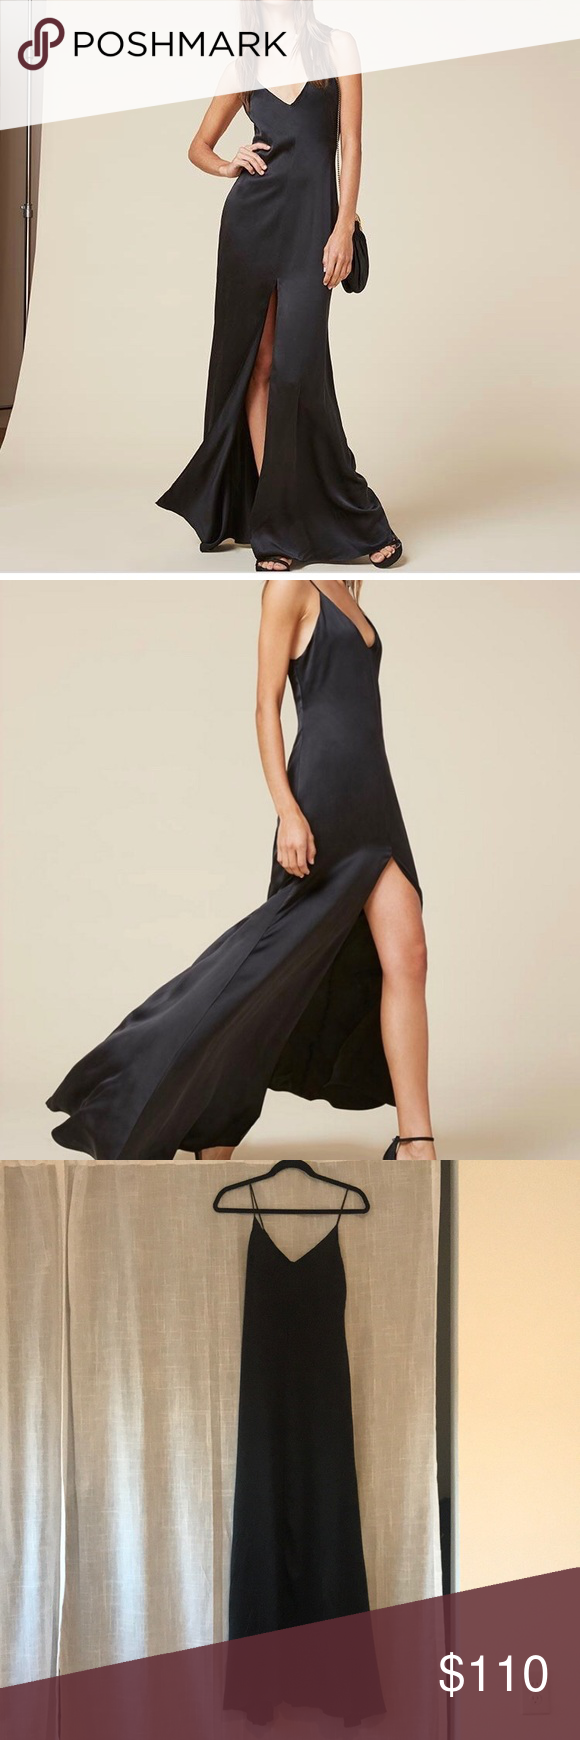 6d6d28ac1a66 Reformation Long Black Evening Slip Cabot Dress Style name  Cabot dress.  Long black